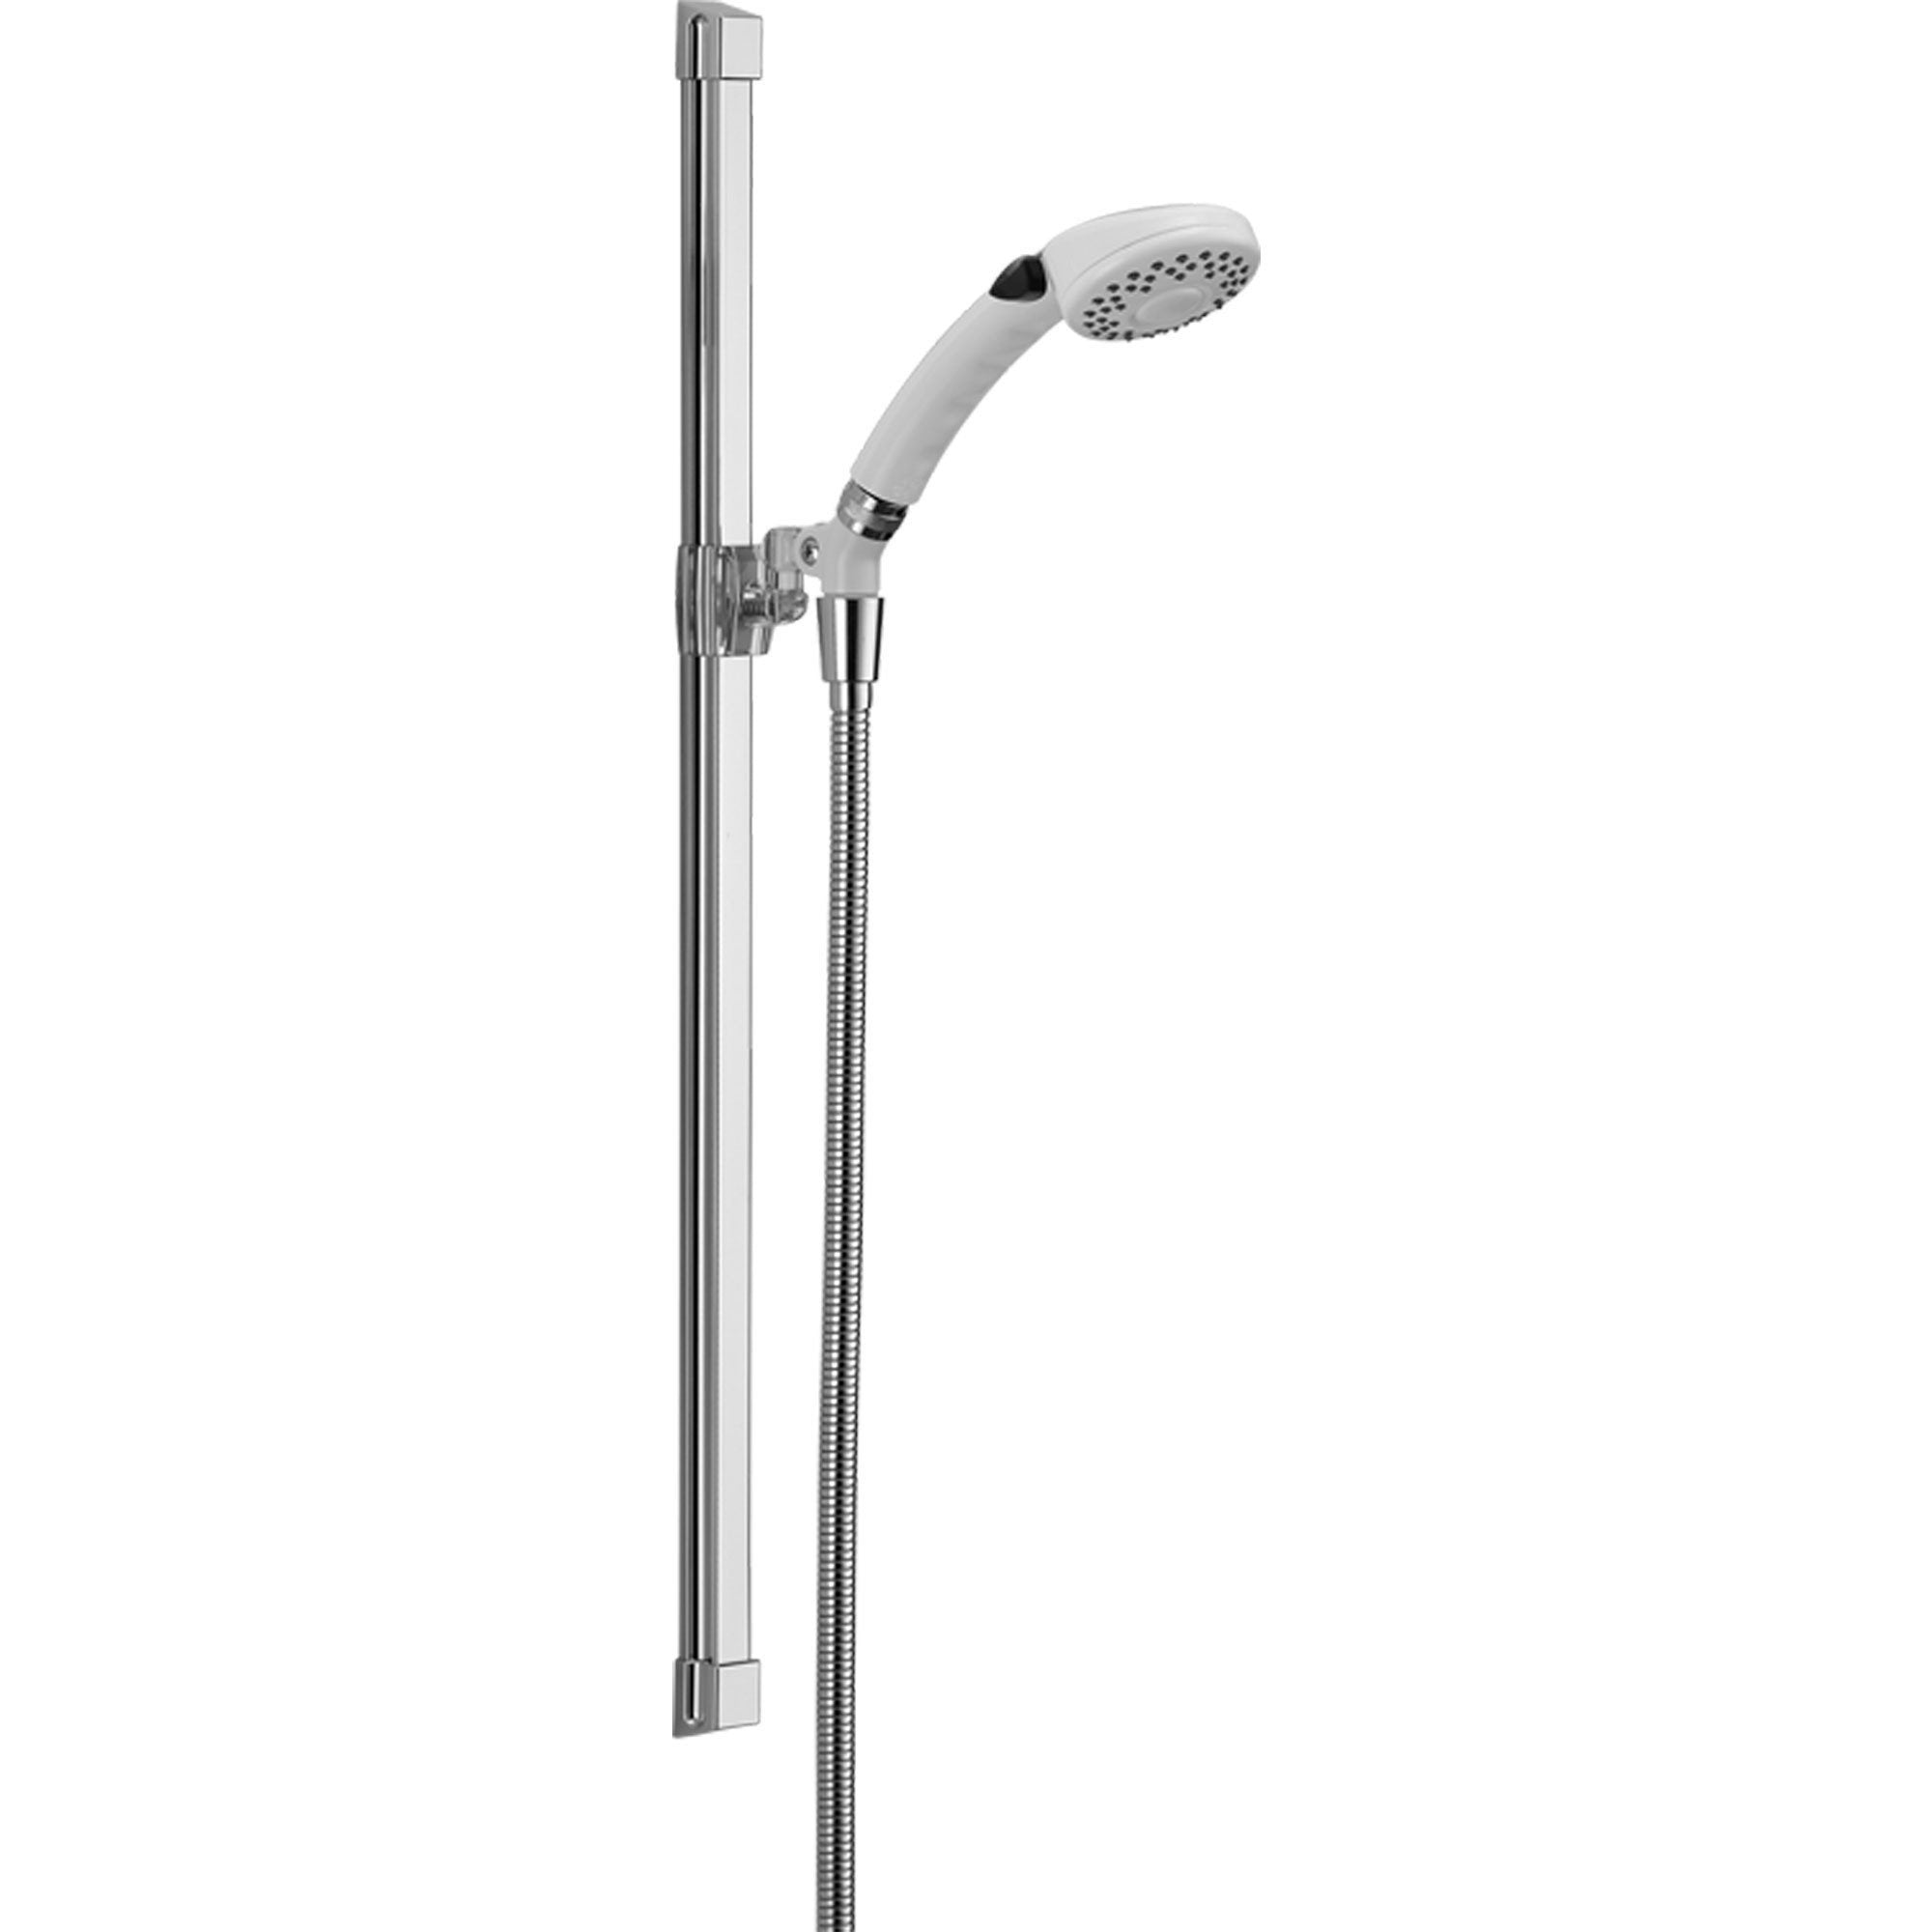 Delta 2-Setting White / Chrome Glide Rail Personal Handheld Shower Faucet 561100